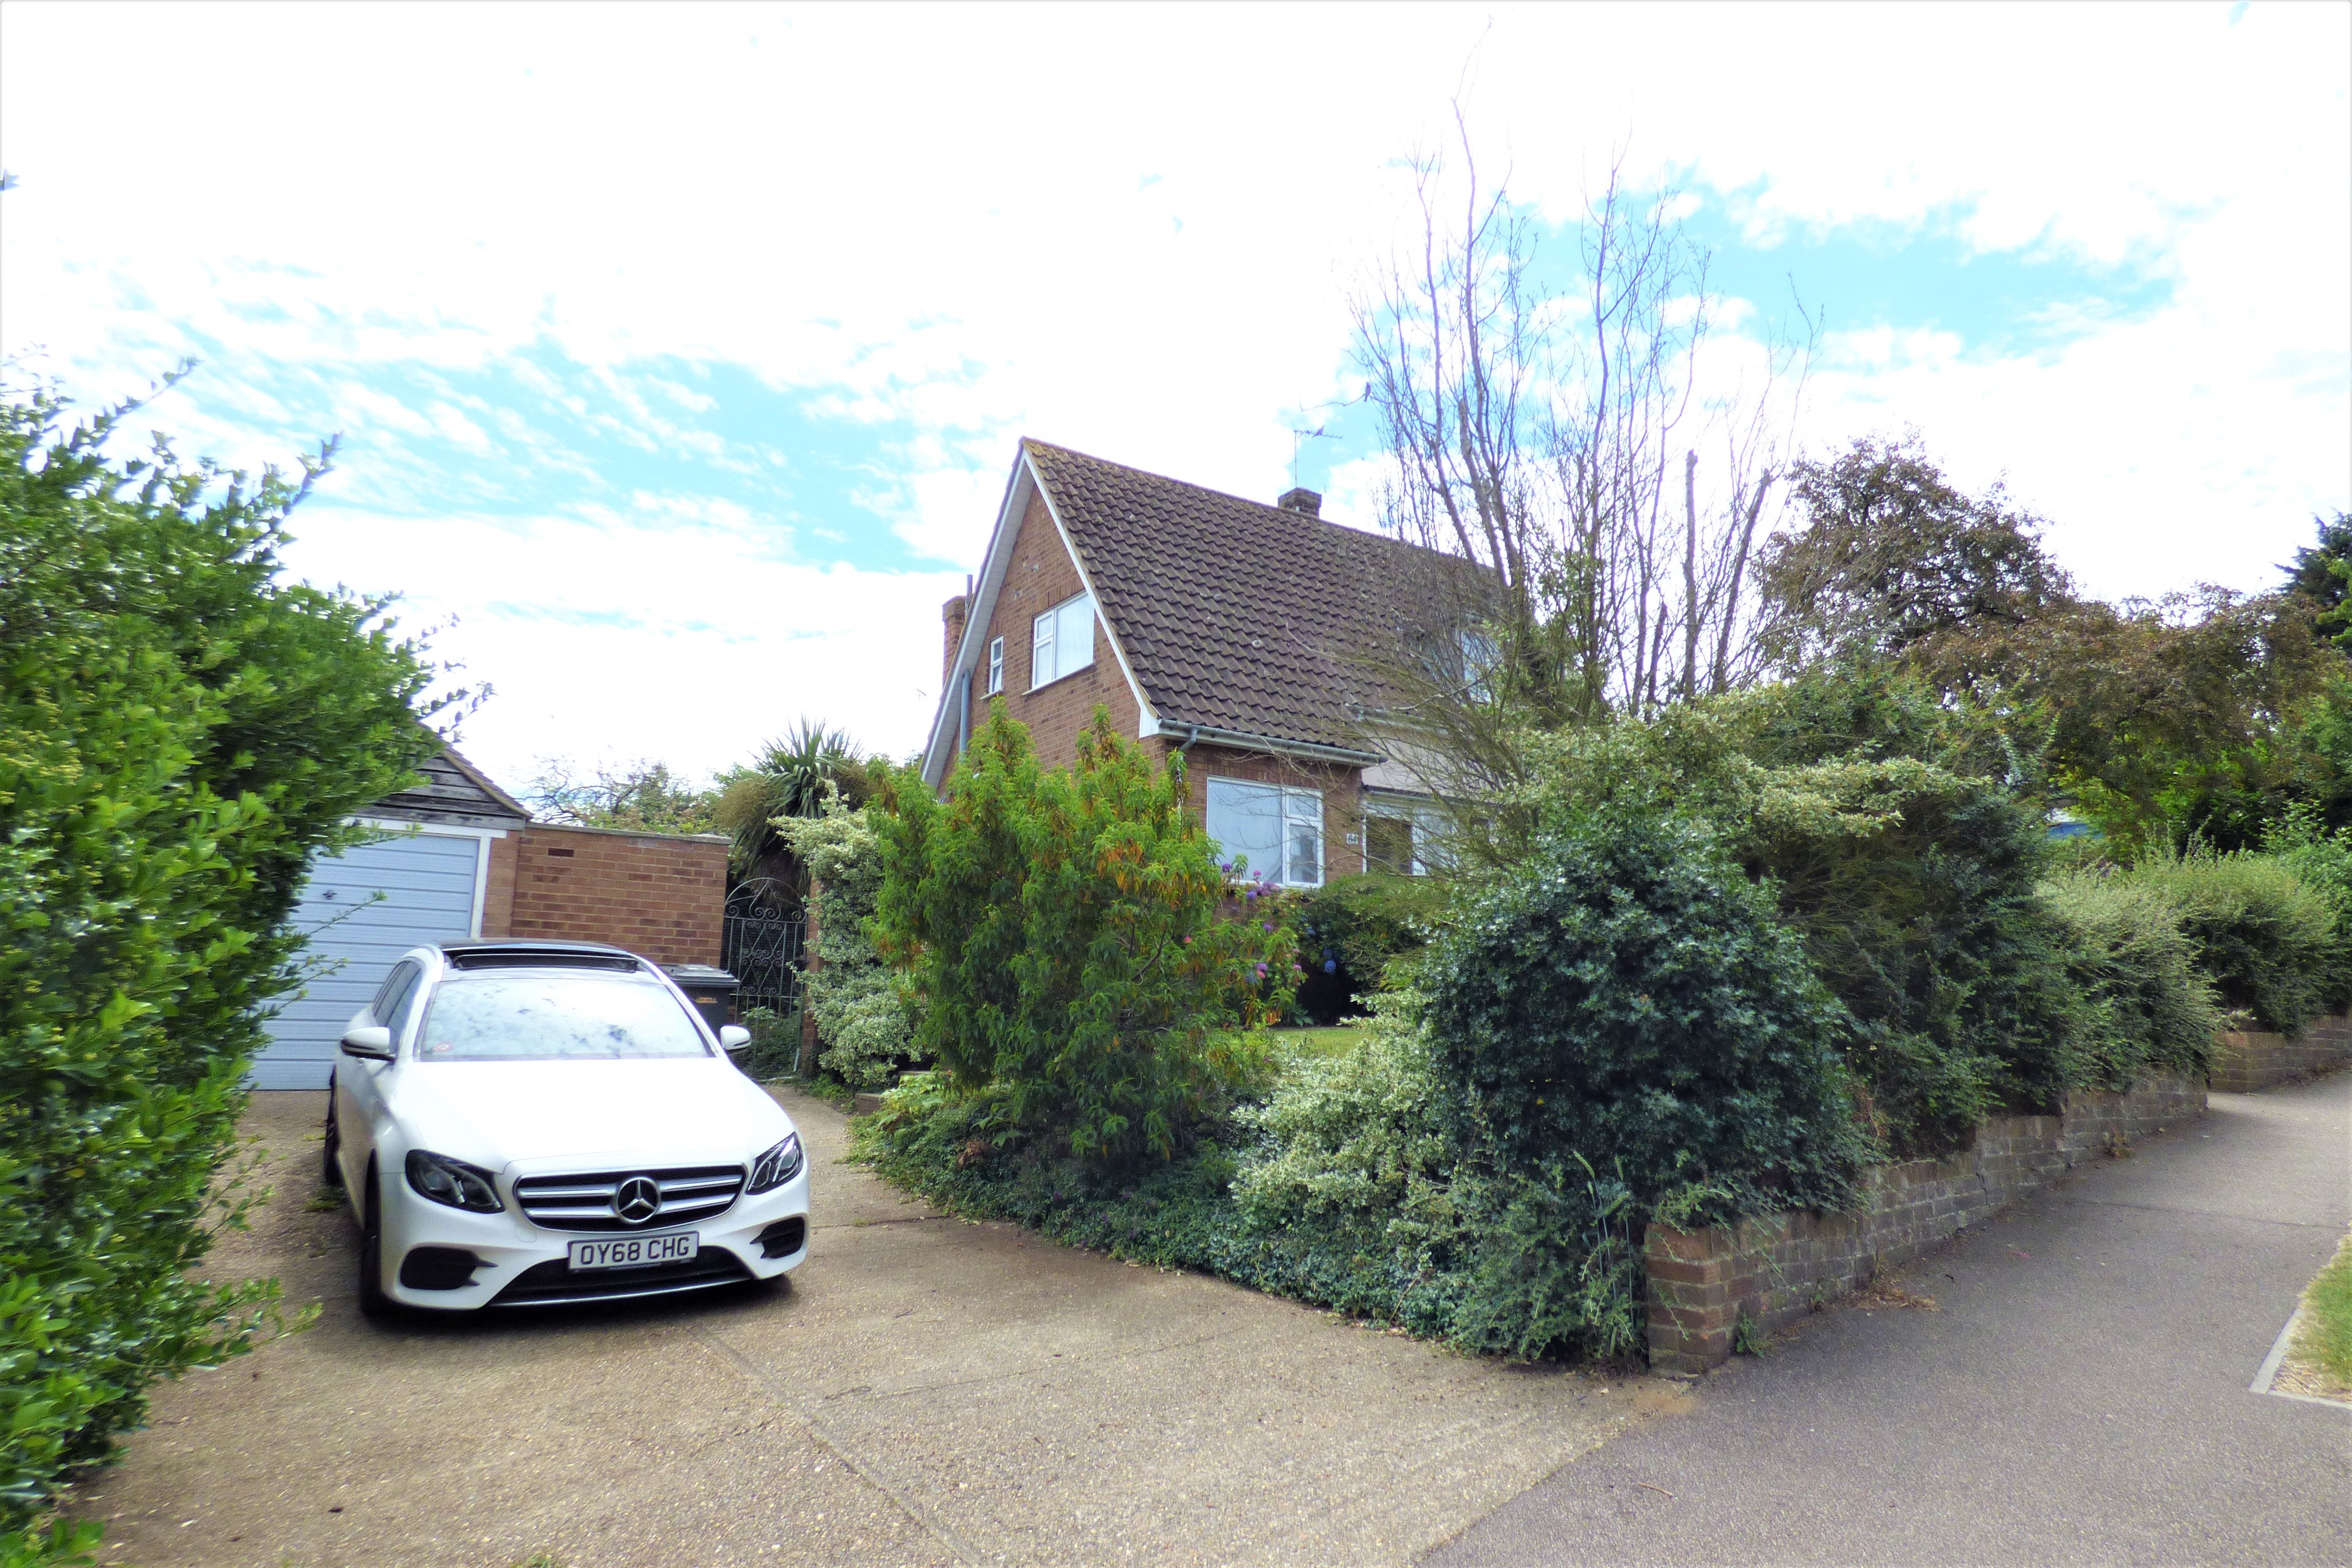 3 bed detached house for sale in Love Lane, Rayleigh - Property Image 1